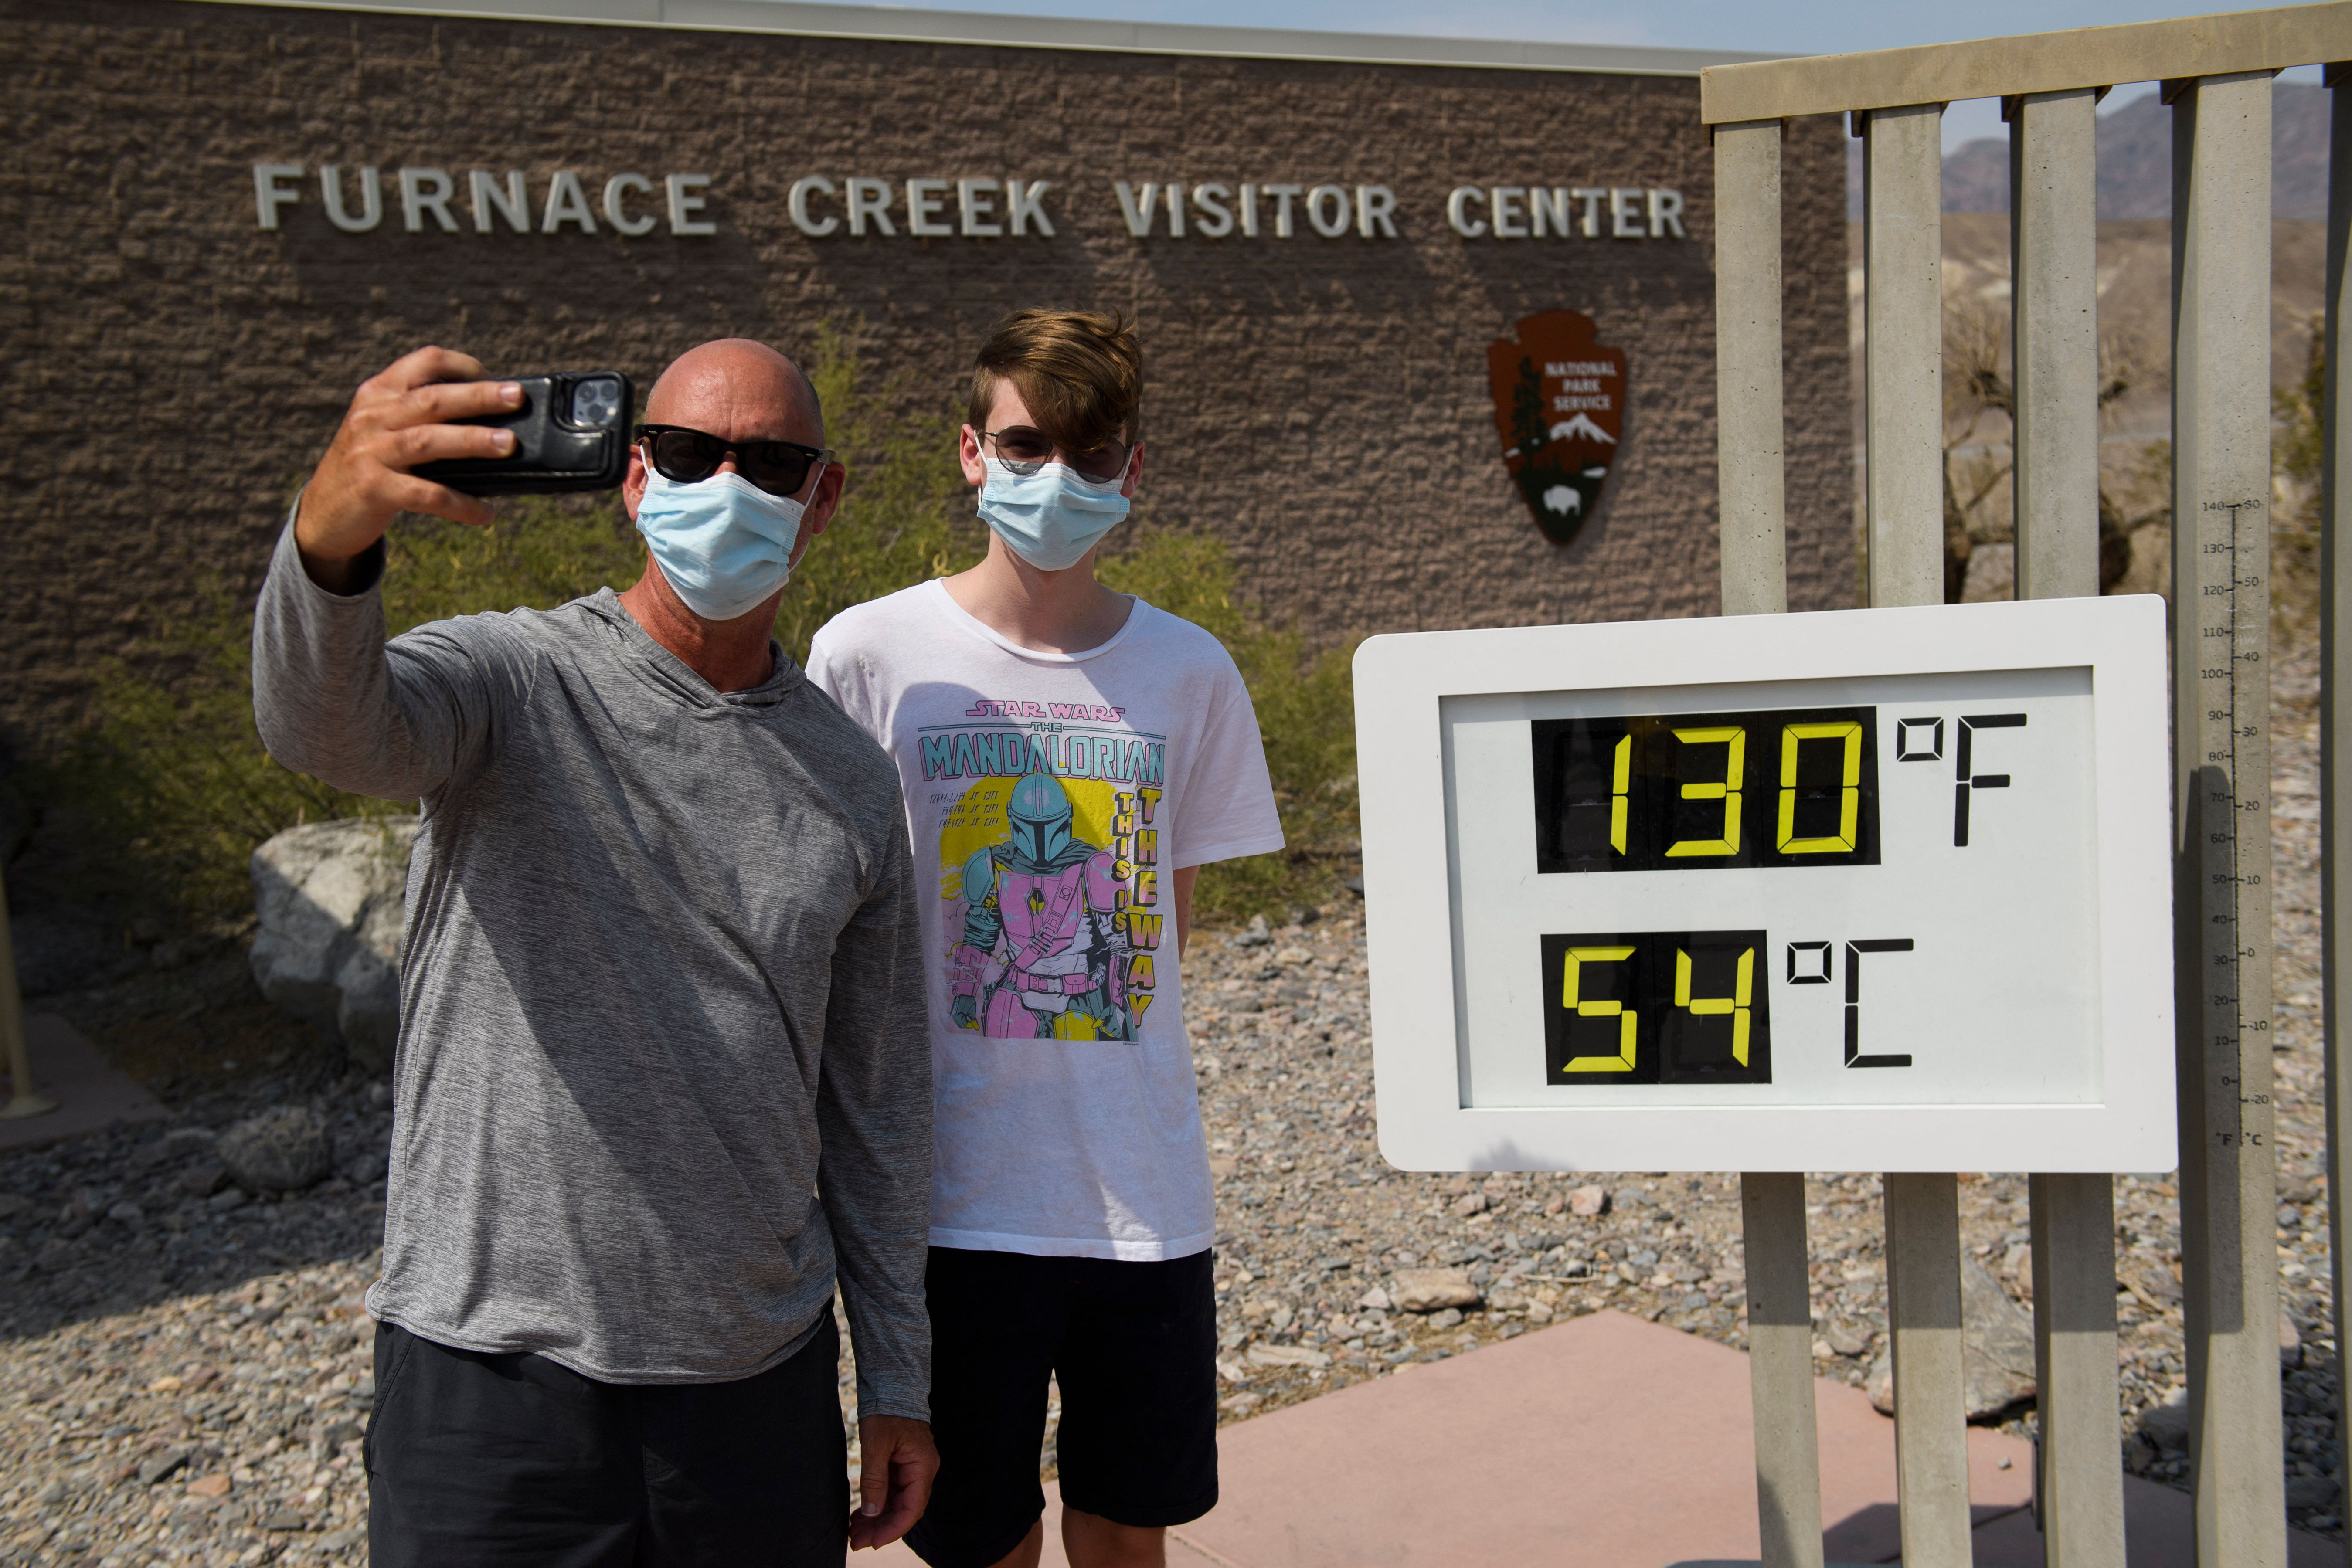 Tourists on a road trip from Texas take pictures with a thermometer displaying temperatures of 130 Degrees Fahrenheit (54 Degrees Celsius) at the Furnace Creek Visitor Center at Death Valley National Park in June 17, 2021.